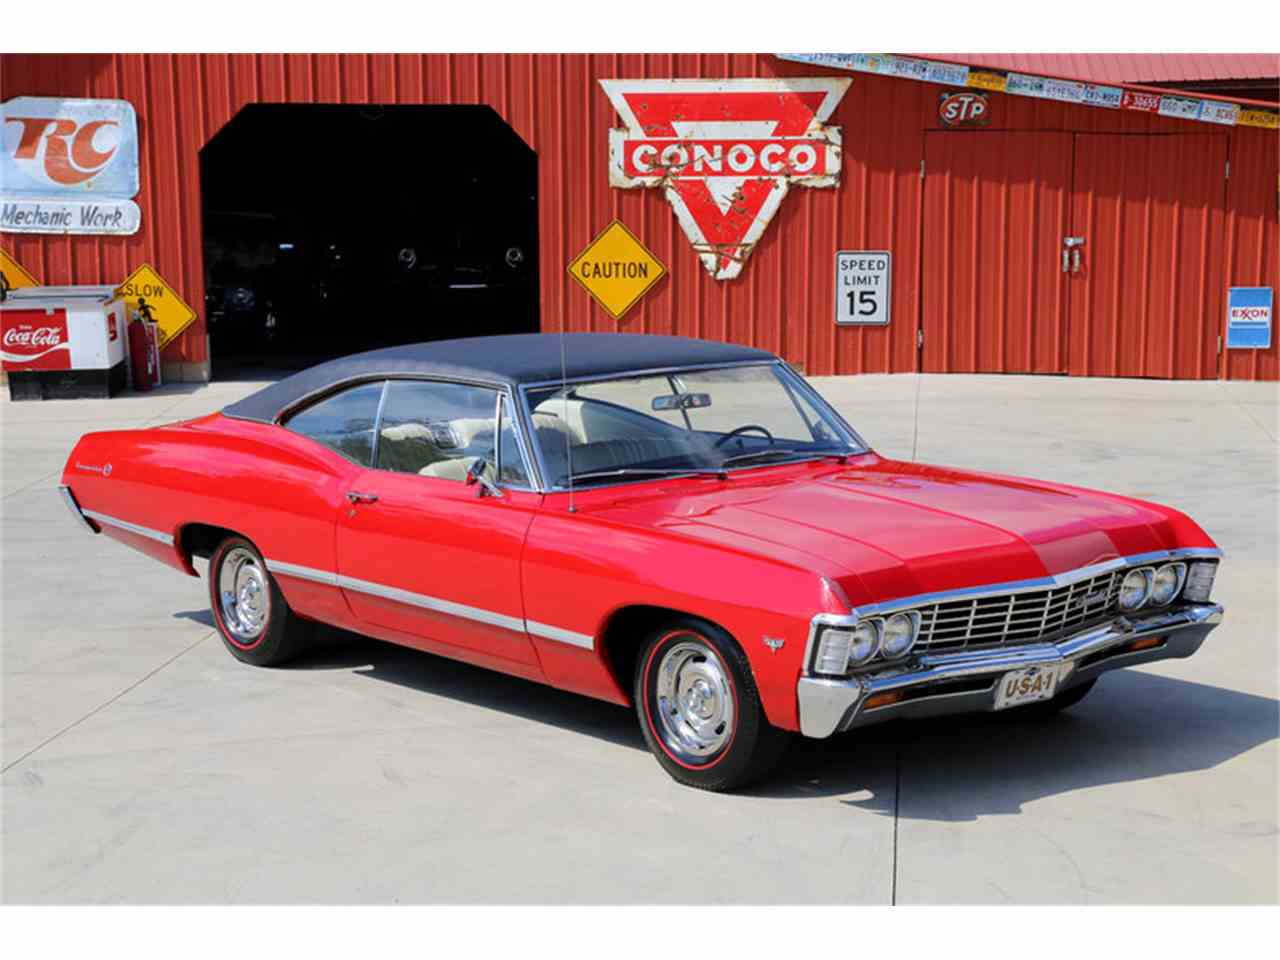 WHAT WOMEN WANT: CLASSICCARS.COM REPORTS: 1967 IMPALA MOST SEARCHED ...